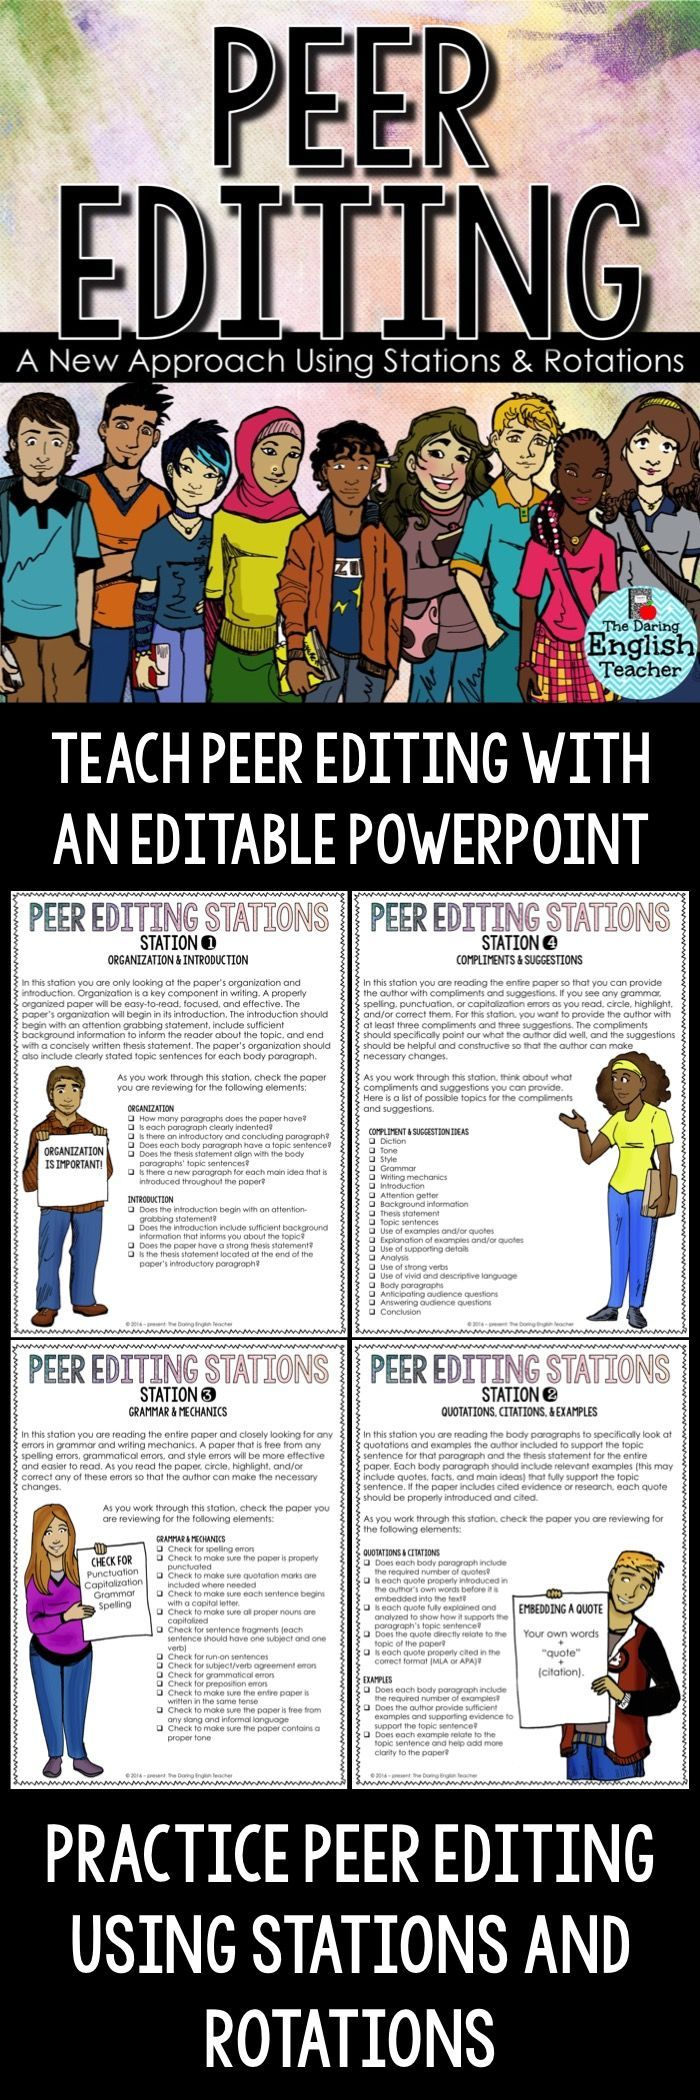 ideas about teaching writing writing anchor peer editing stations and rotations writing teachinggrade writingteaching ideasrevision writingwriting classessay